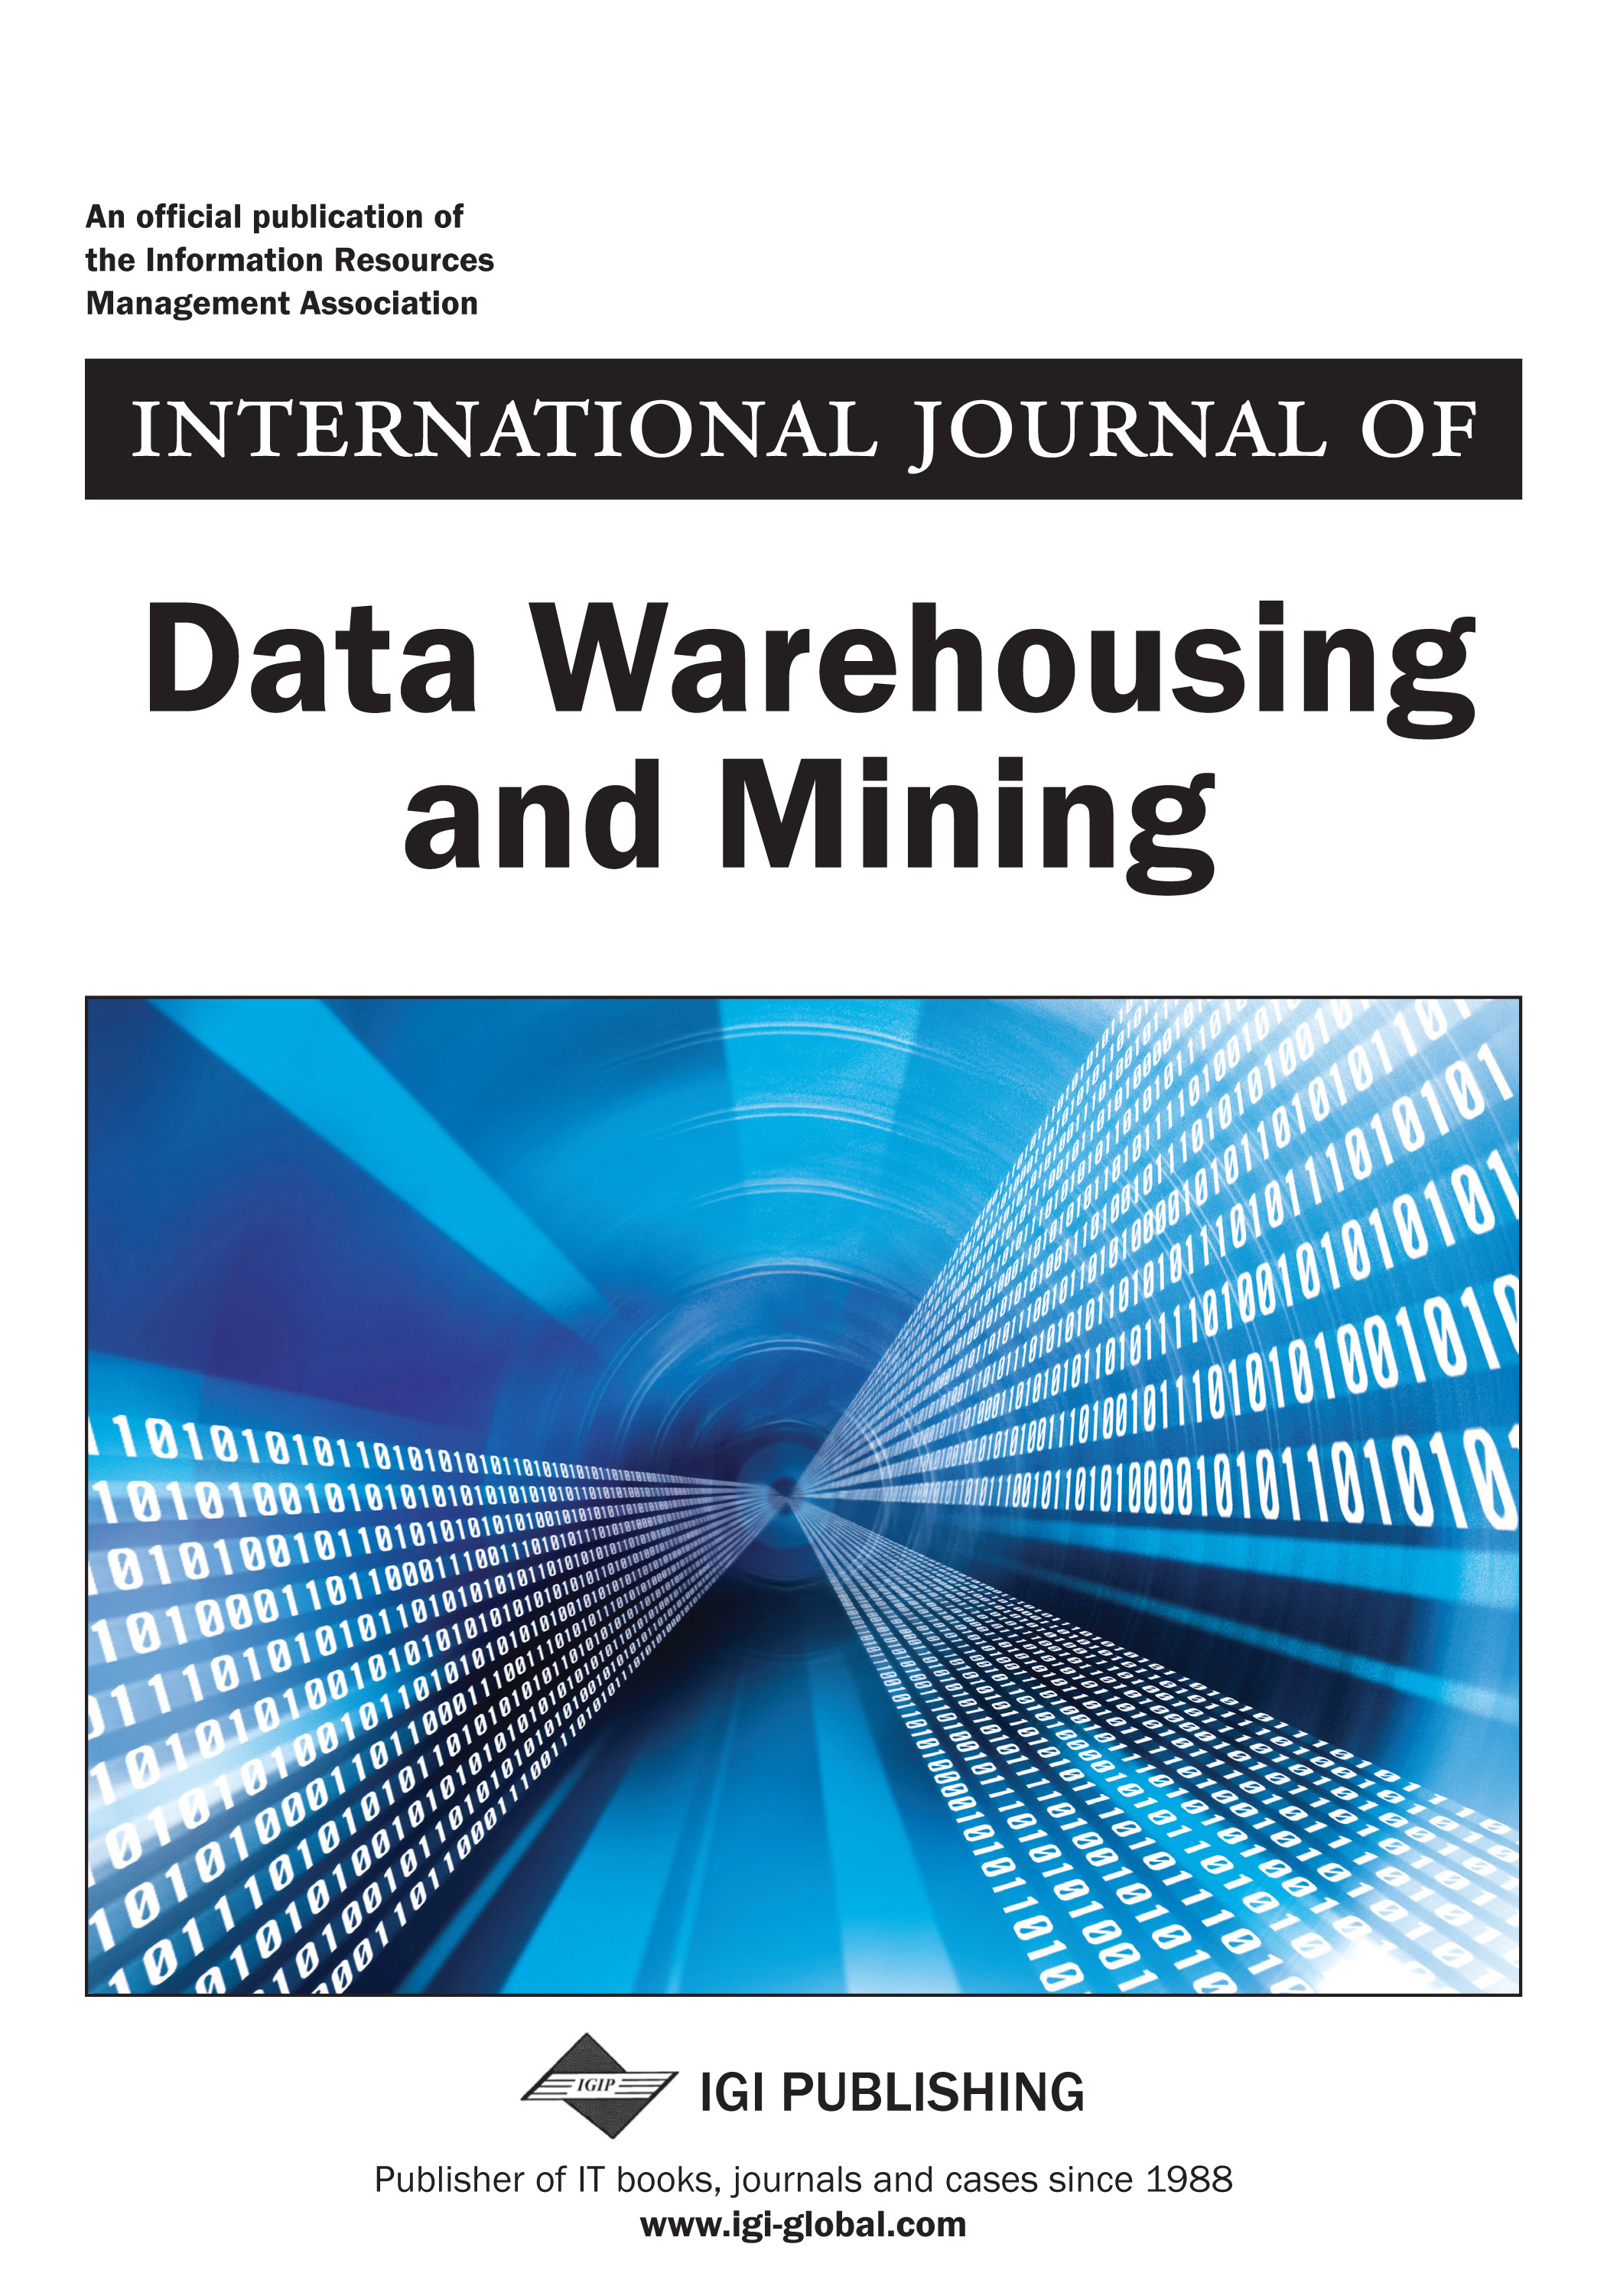 International Journal of Data Warehouse and Mining